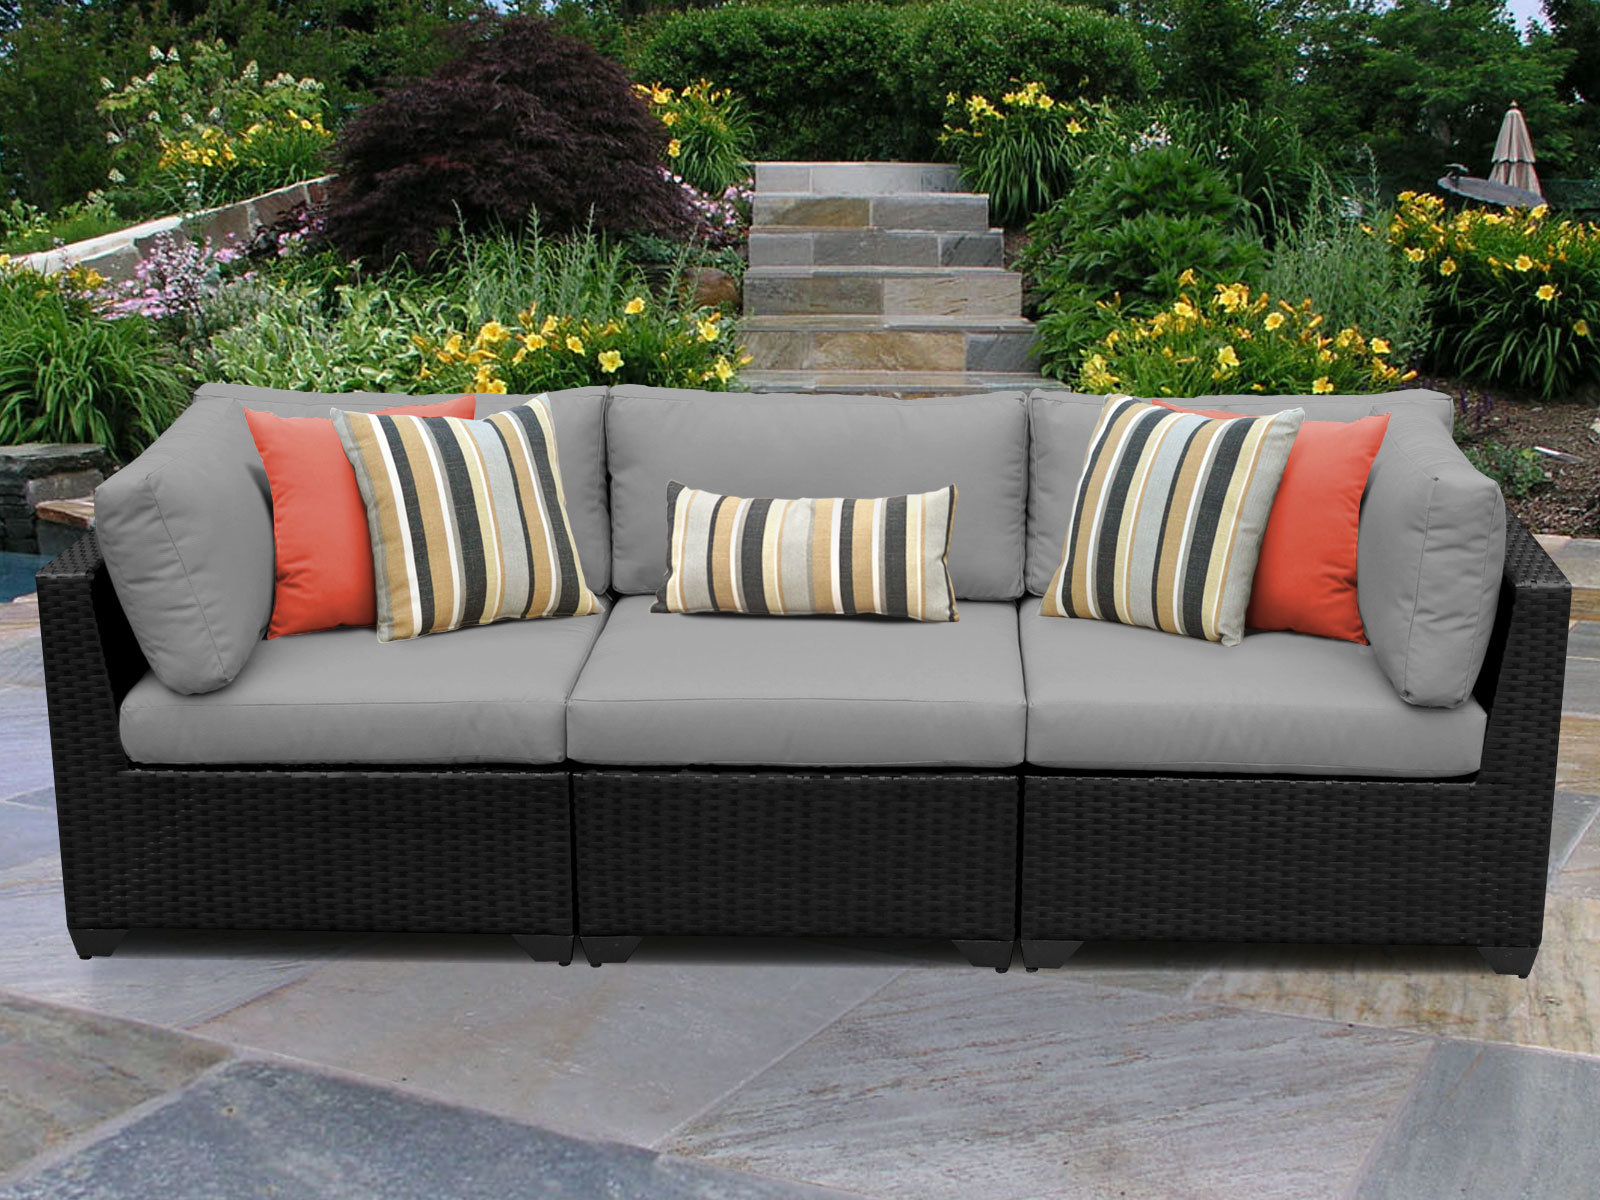 Camak Patio Sofas With Cushions Throughout Well Known Camak Patio Sofa With Cushions (View 2 of 20)